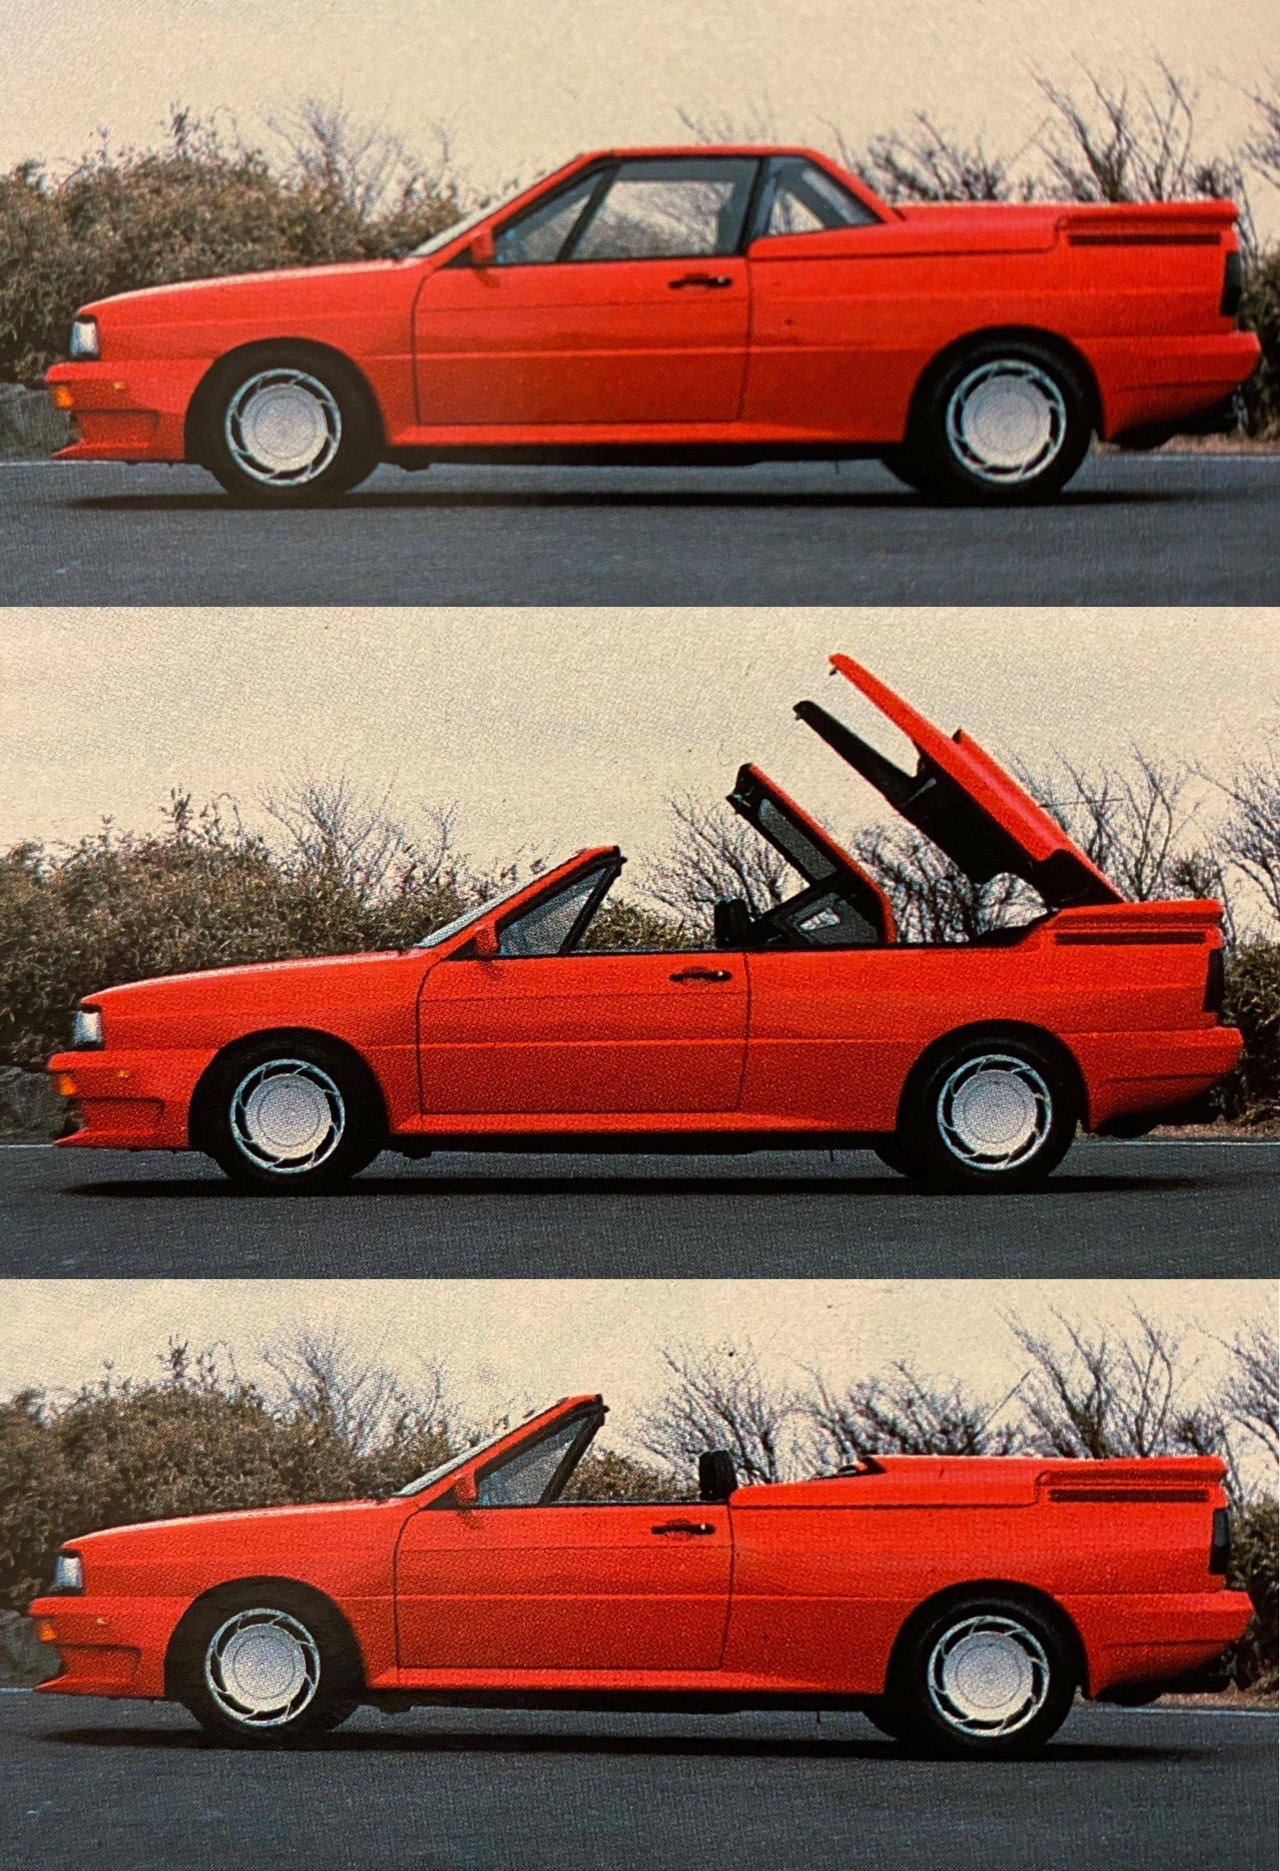 Audi Quattro Roadster by Treser - Back to the 80's 4